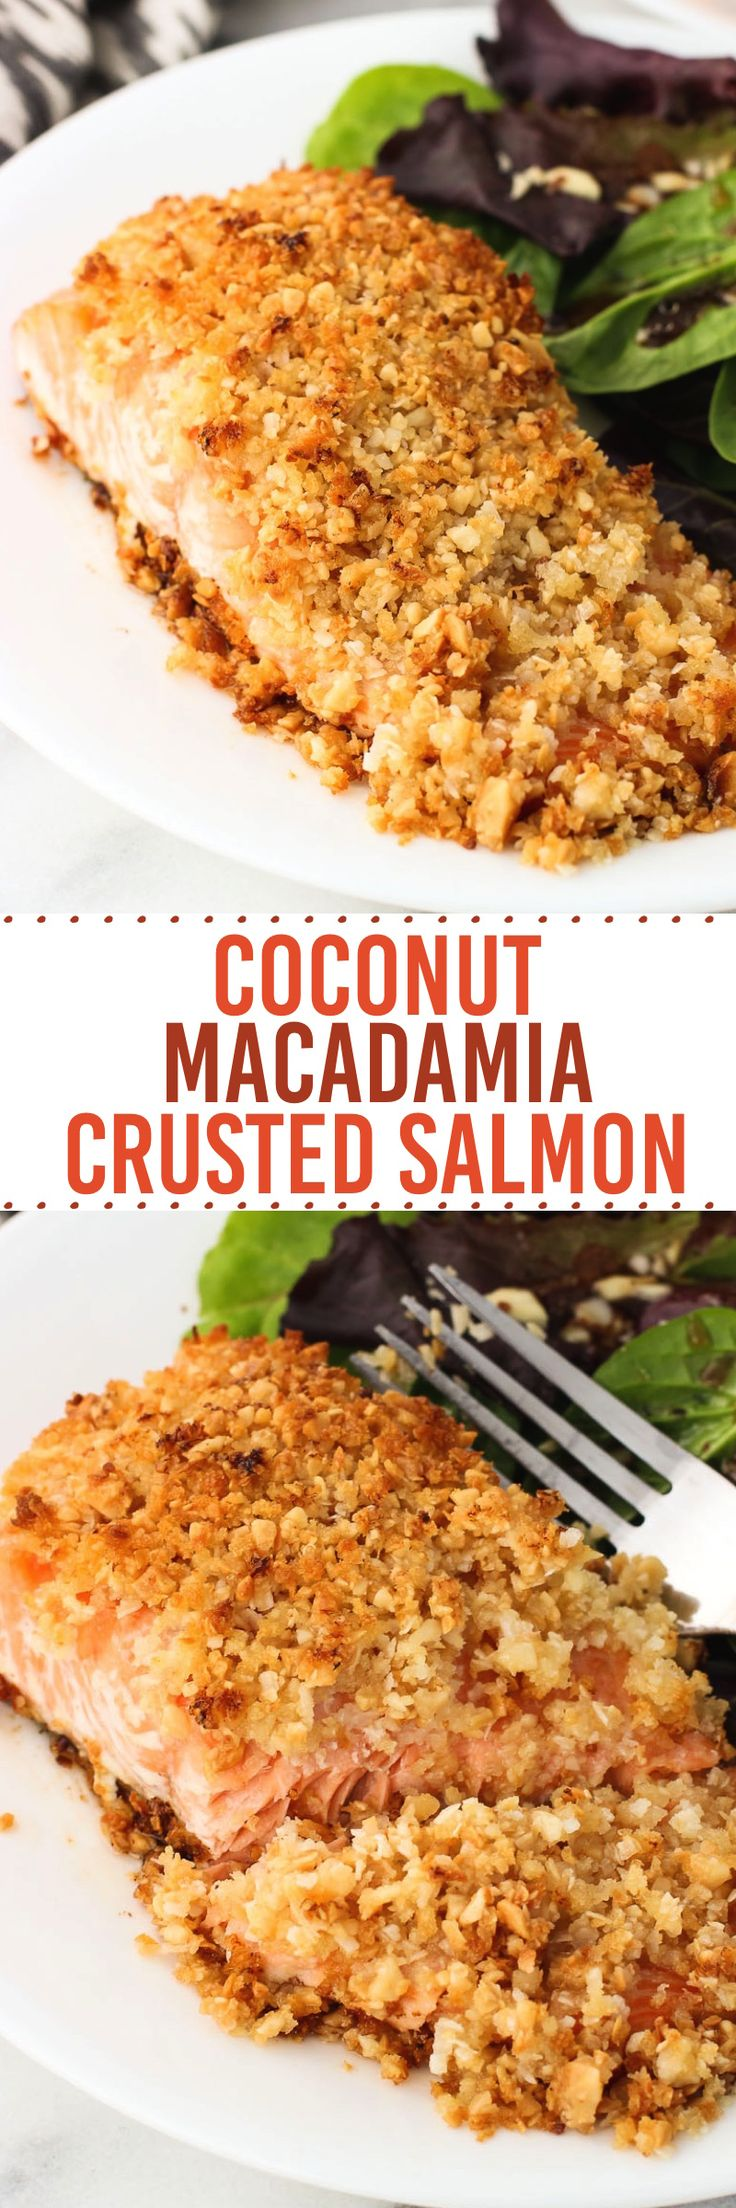 Coconut Macadamia Crusted Salmon is a quick and healthy dinner recipe with a thick crust of macadamia nuts, unsweetened coconut, and panko breadcrumbs.